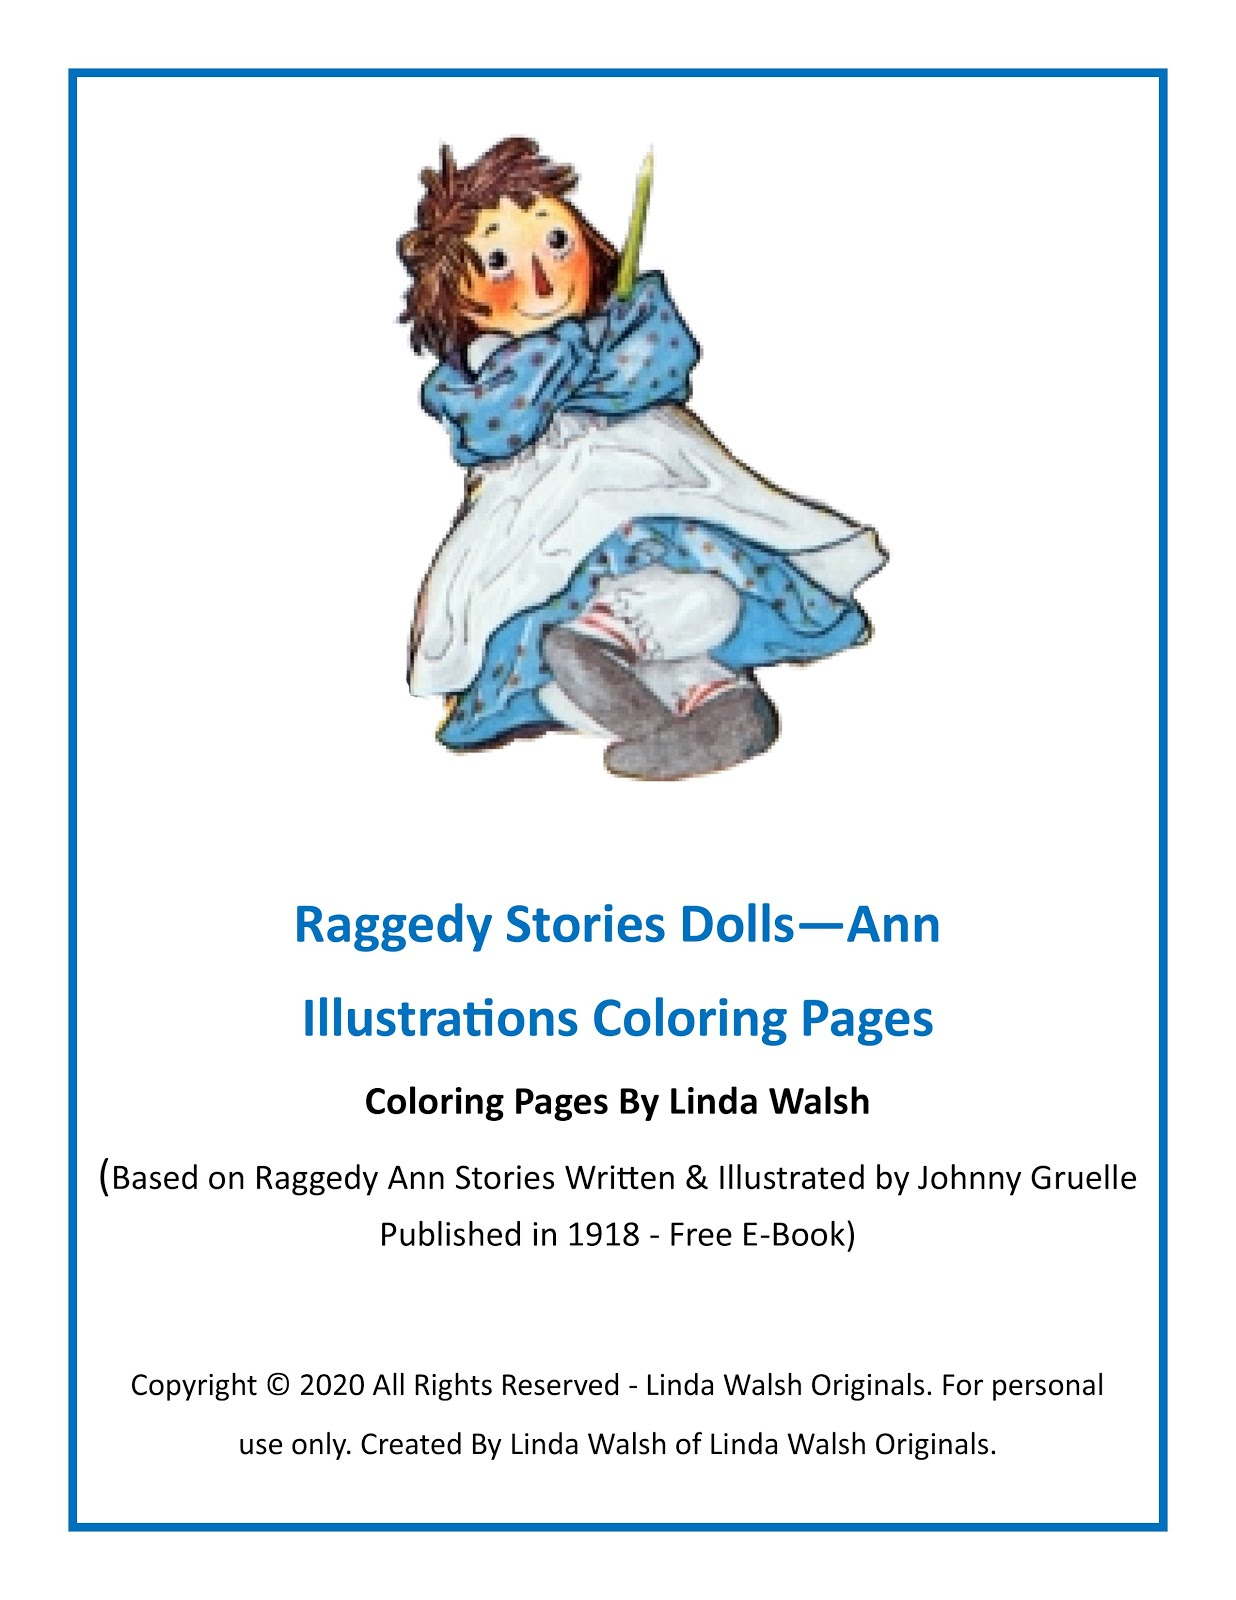 Raggedy Stories Dolls - Ann Illustrations Coloring Pages Free E-Book